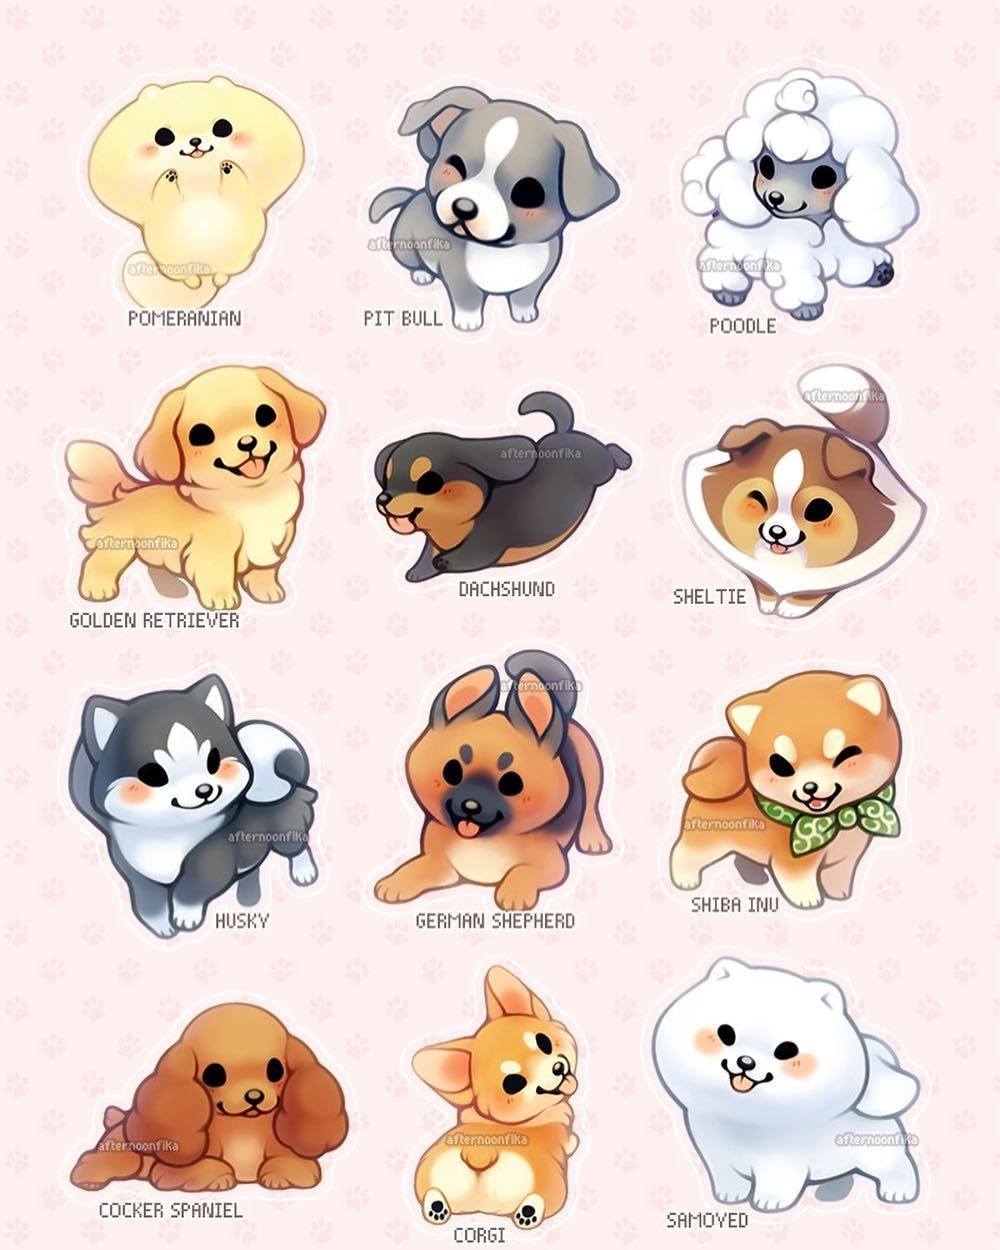 Cute dog drawings - photo#41